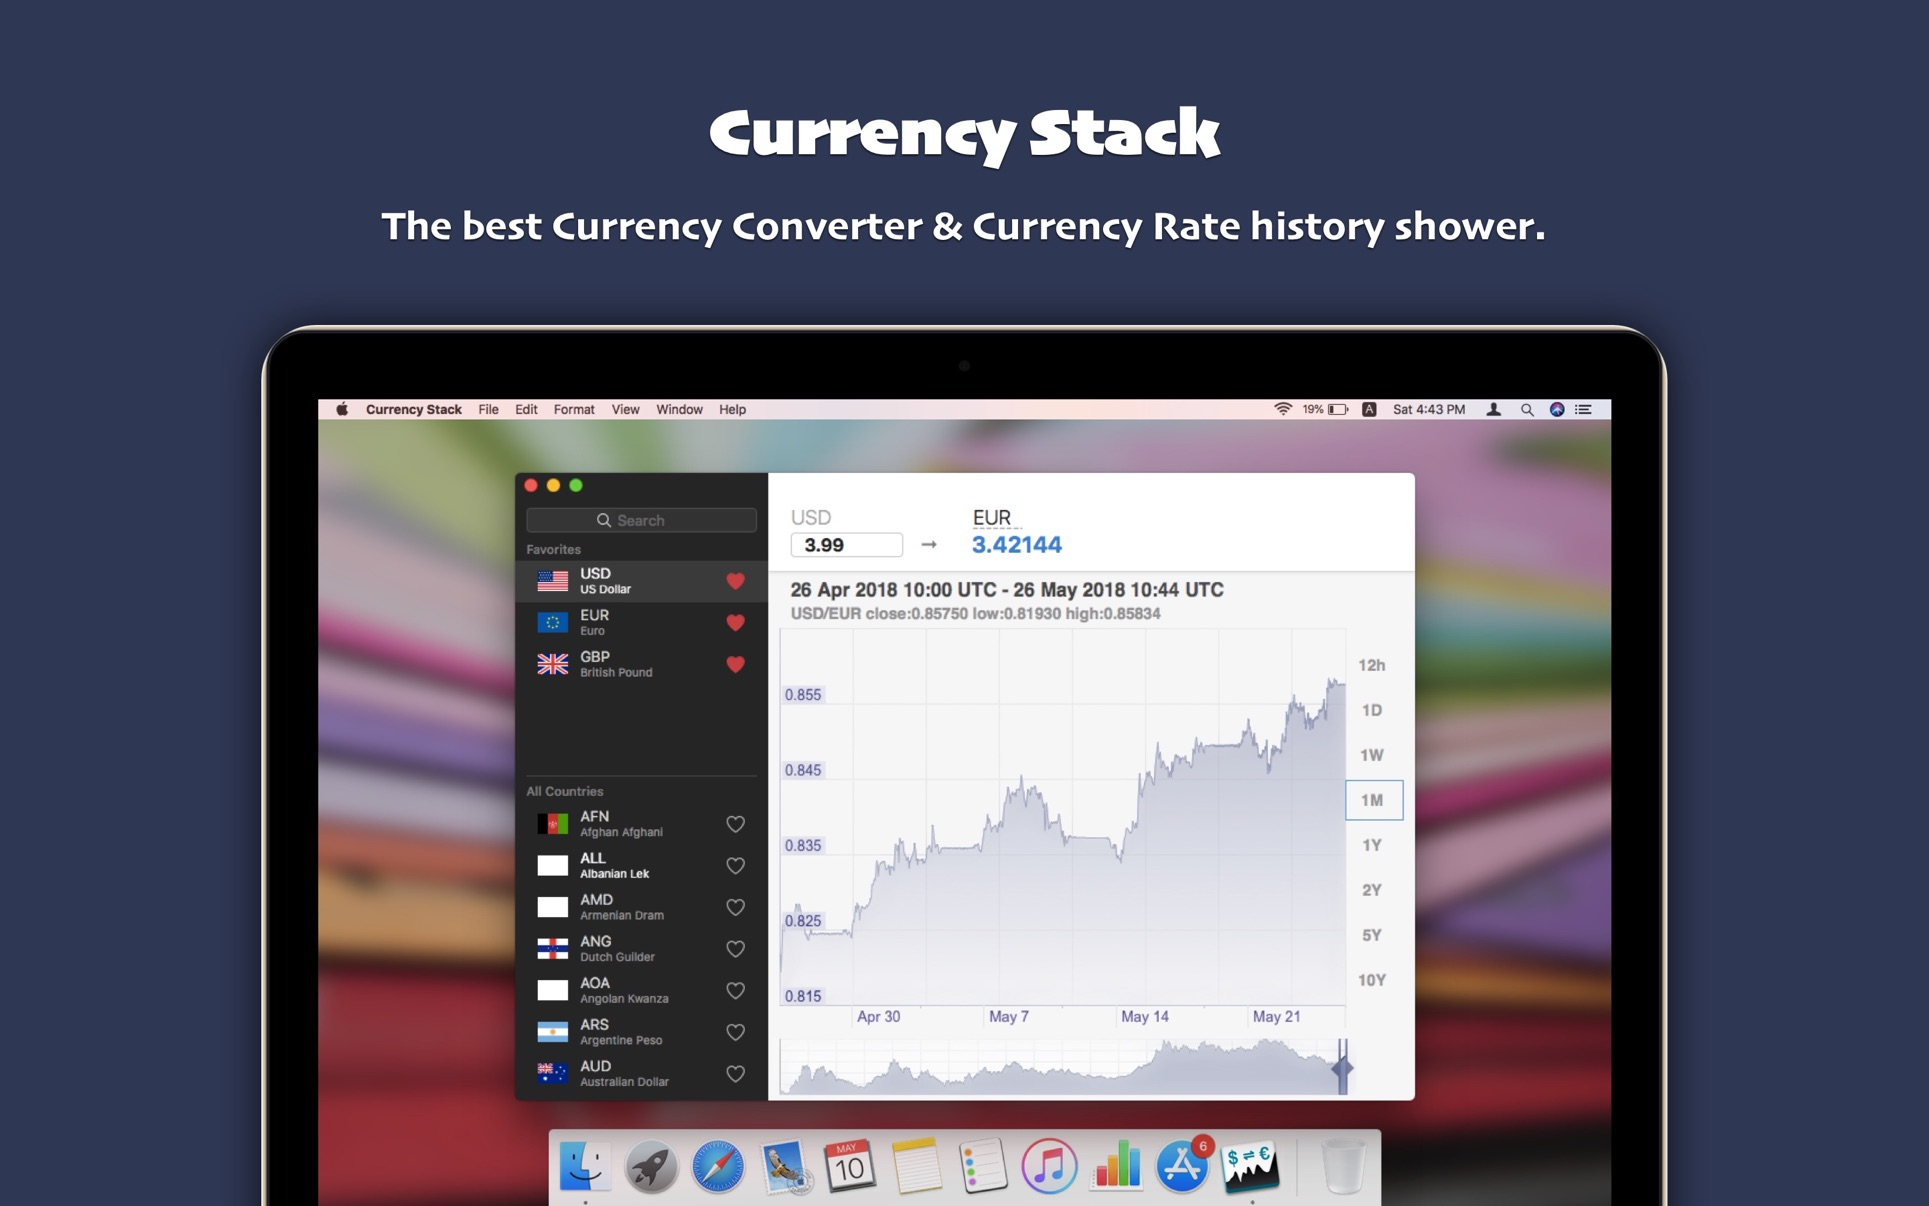 Currency Stack